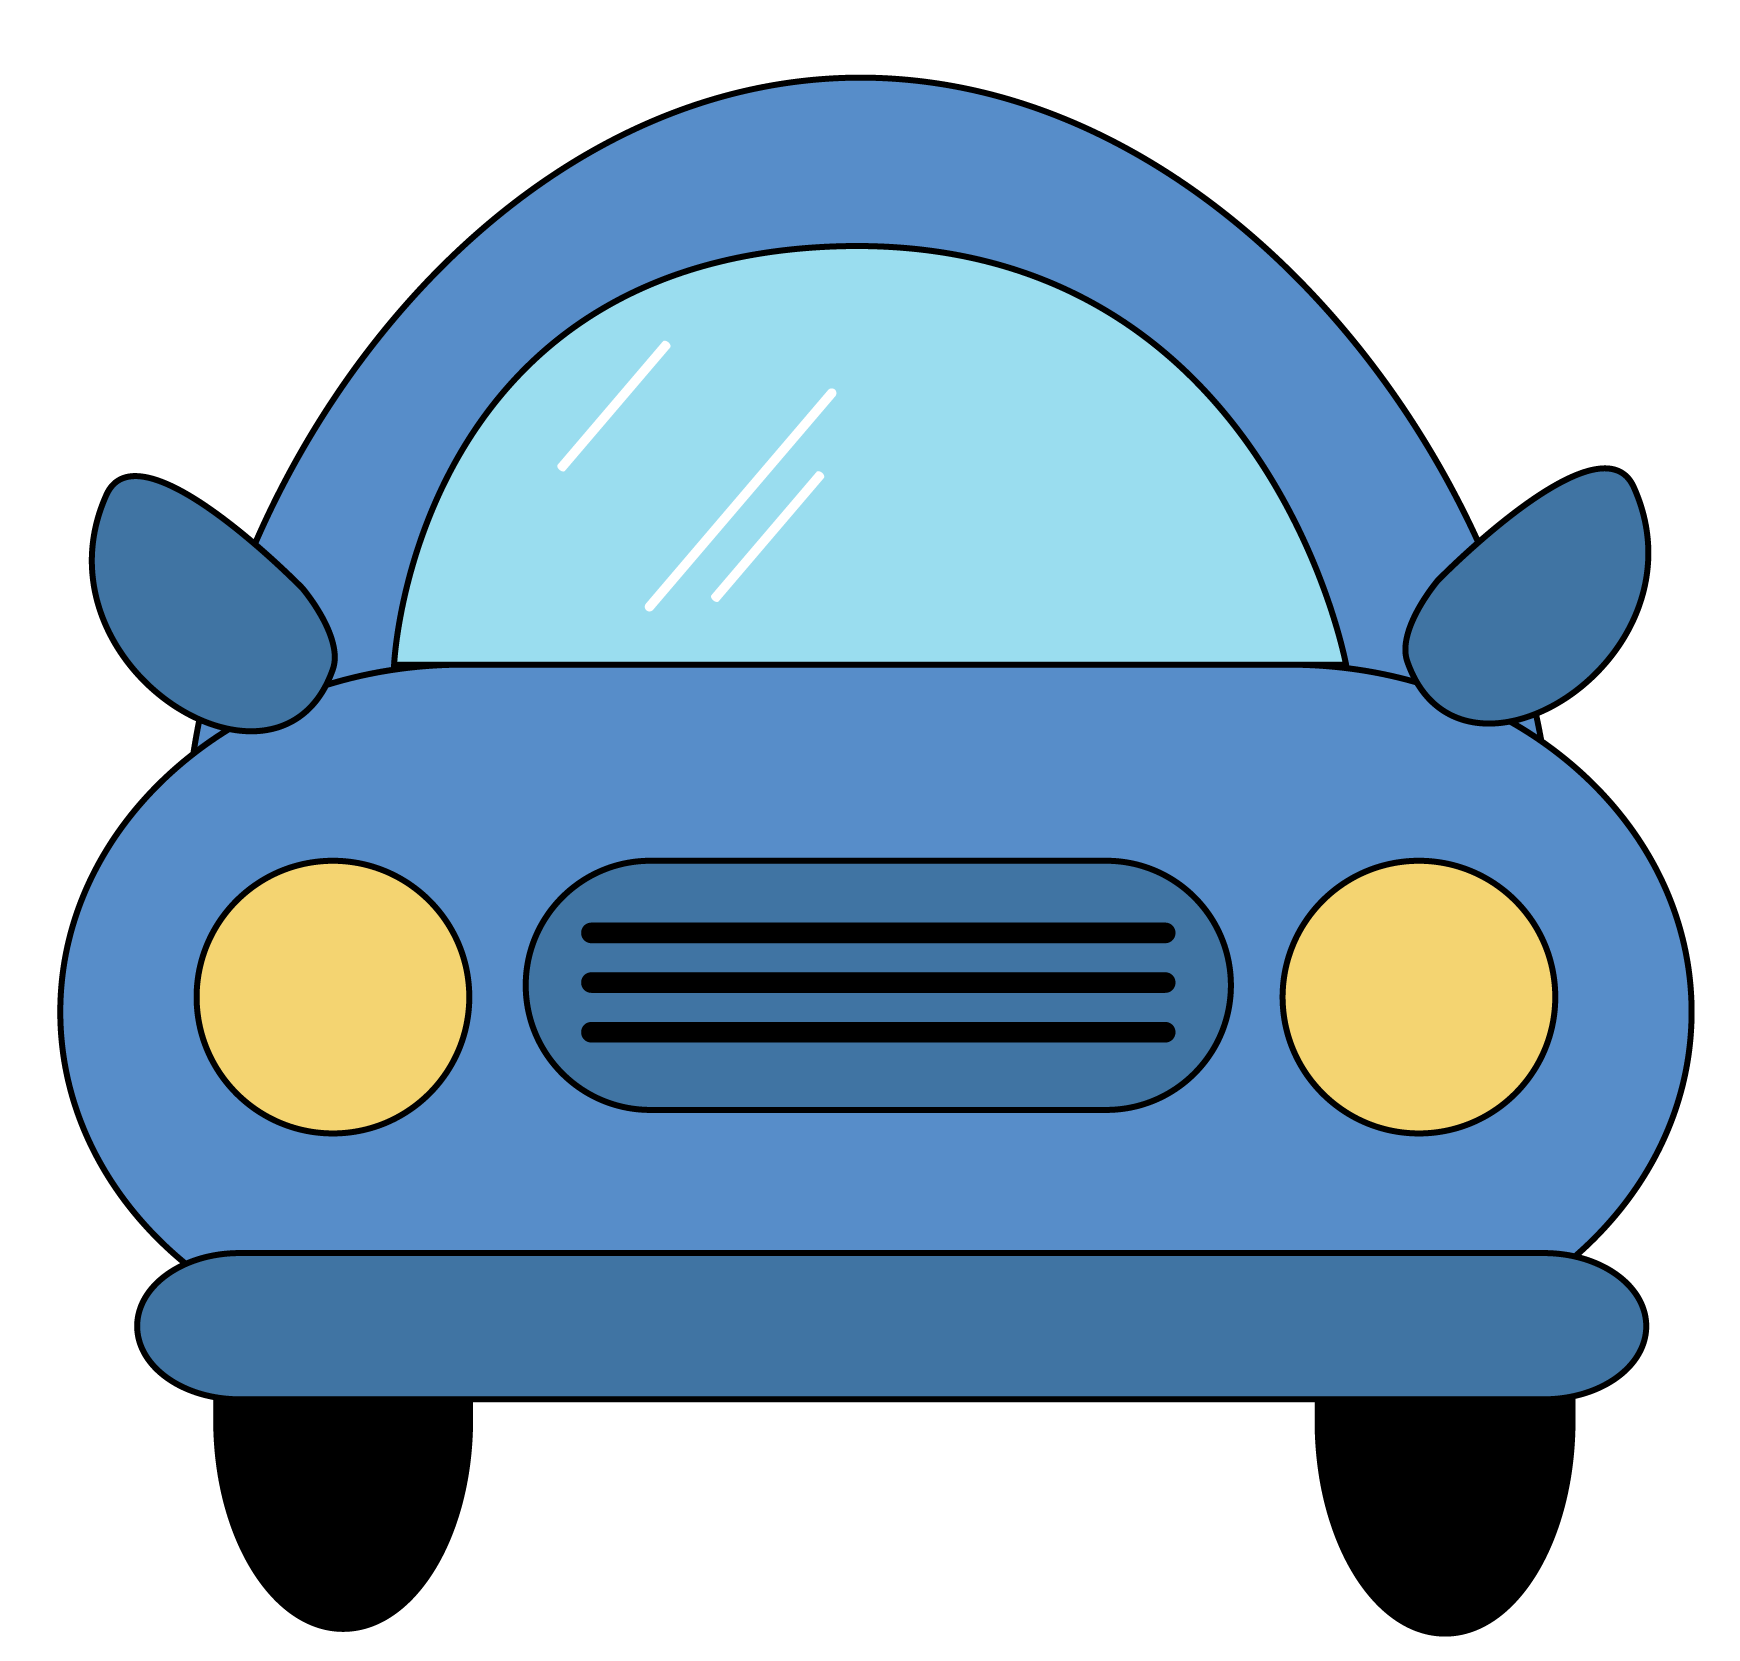 Car Clipart Front View | Clipart Panda - Free Clipart Images